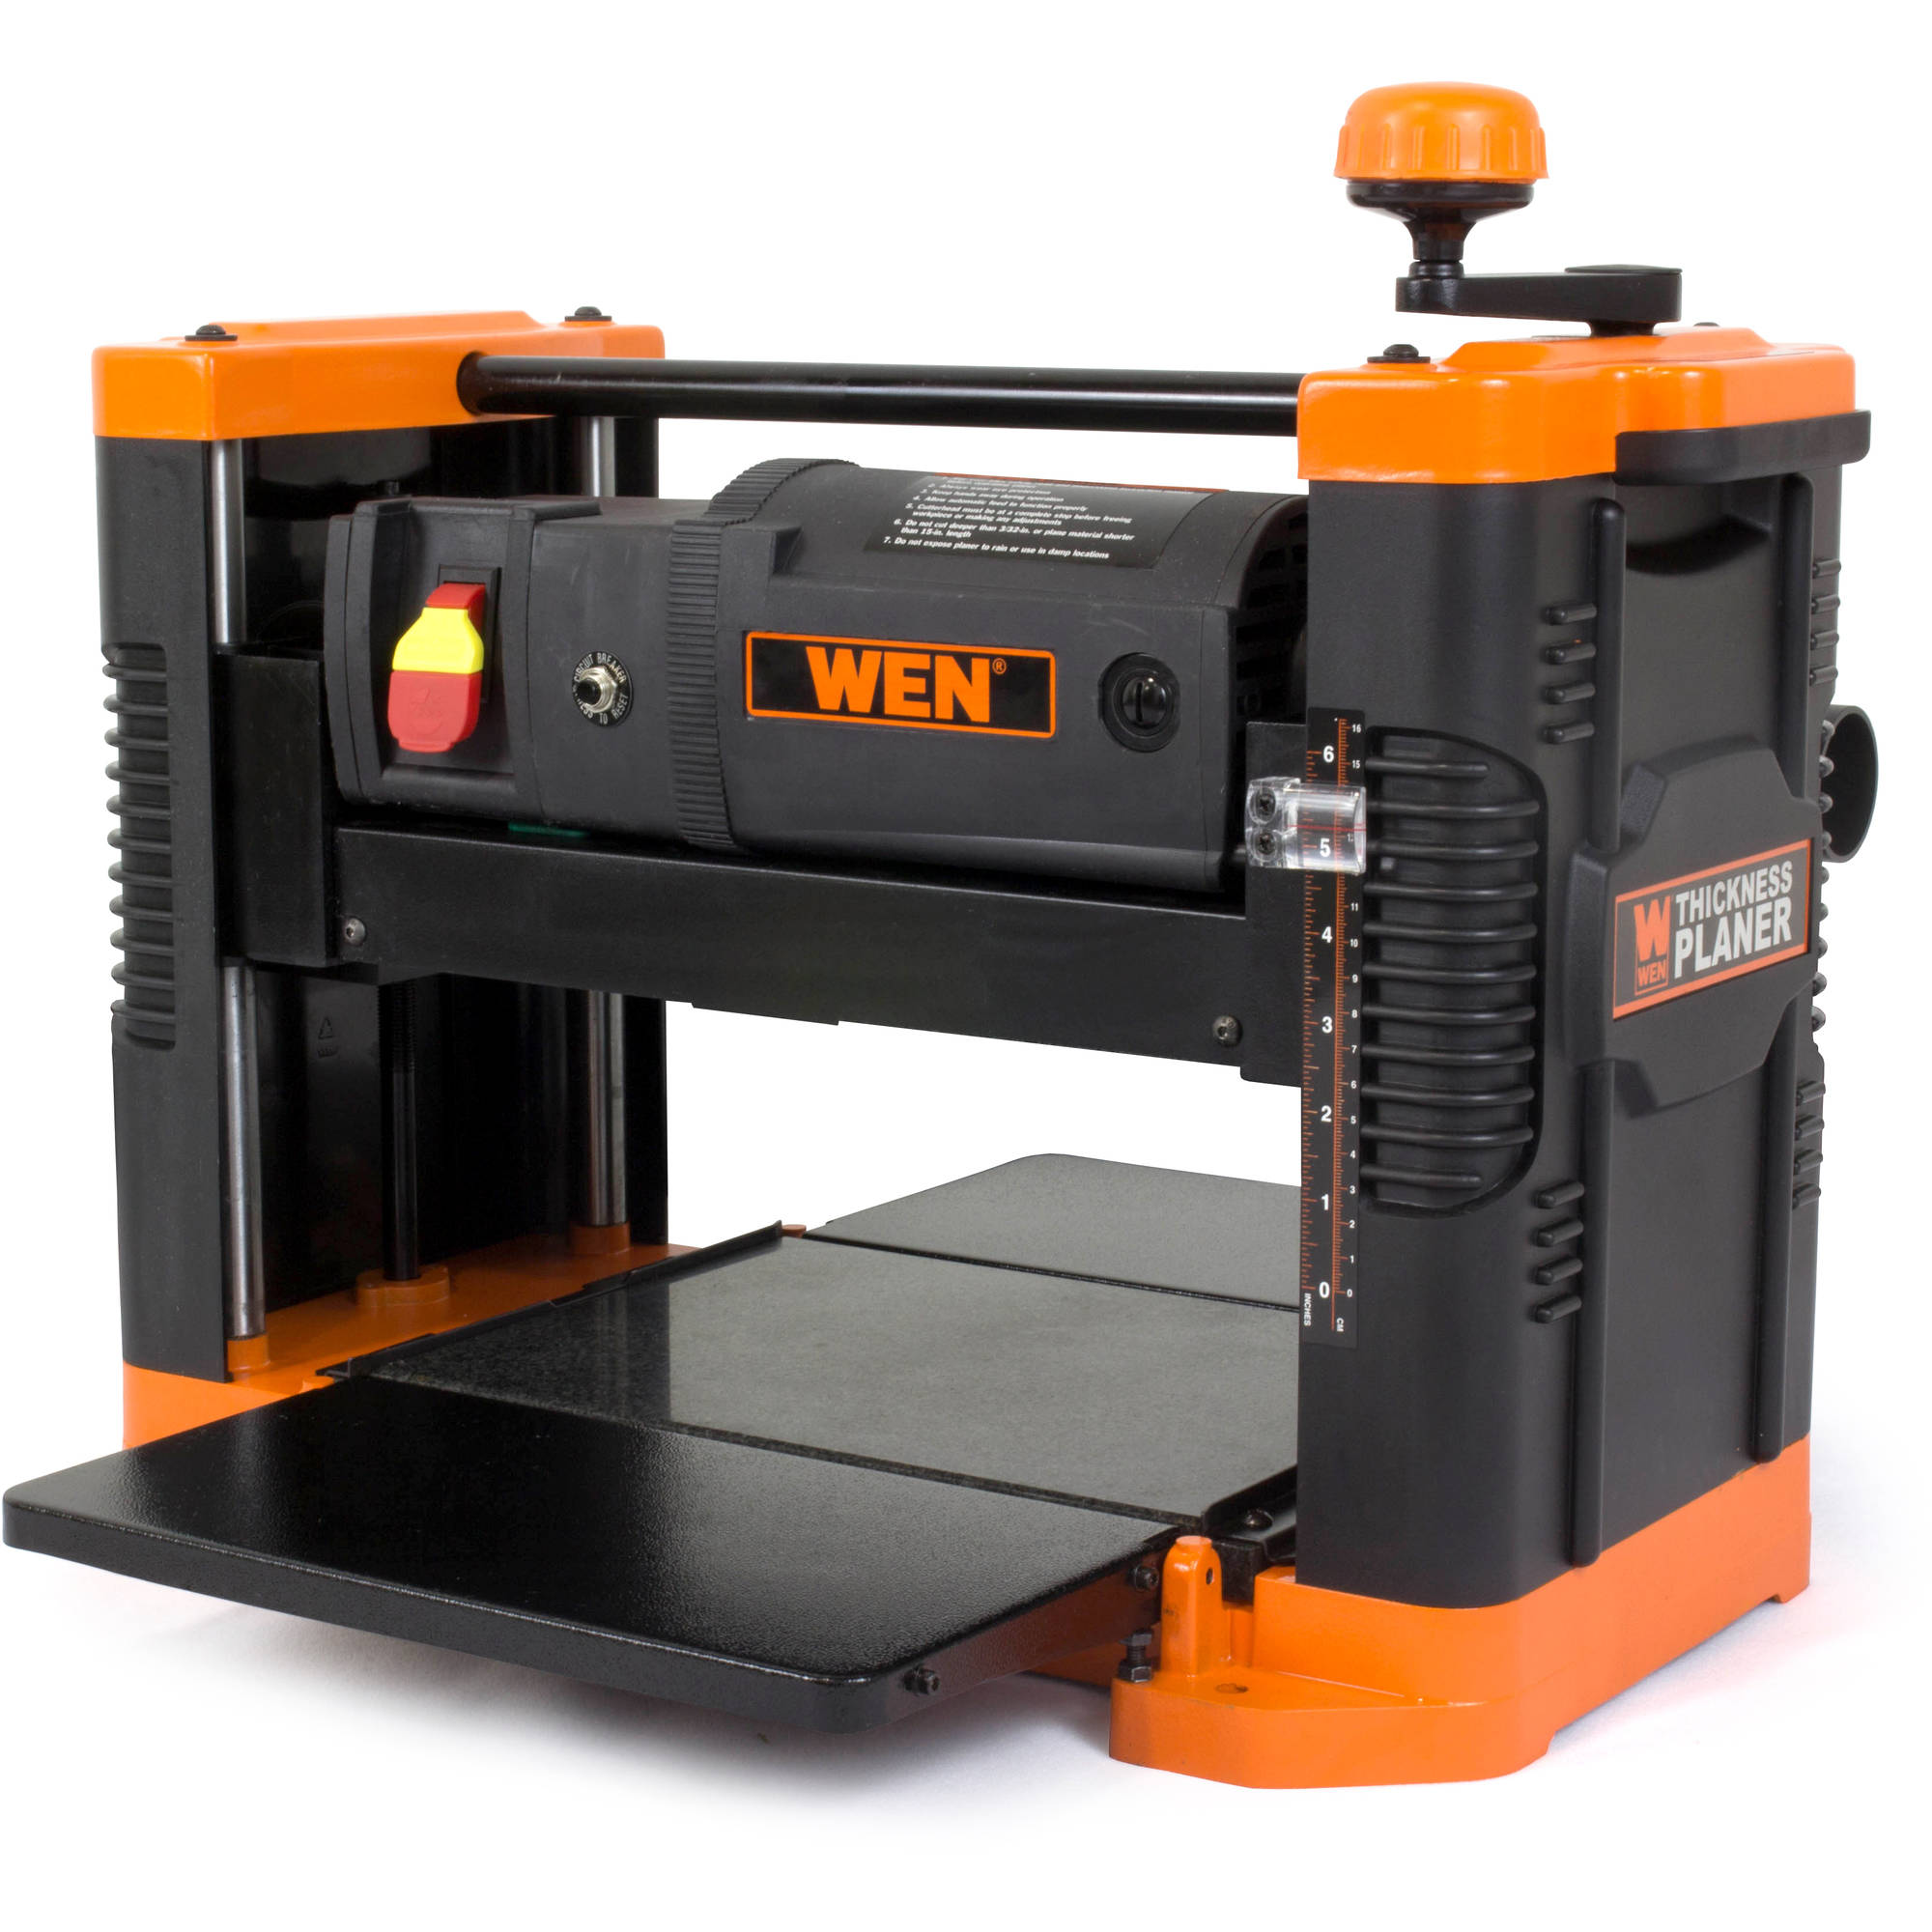 "WEN 12.5"" Benchtop Thickness Planer with Granite Table"